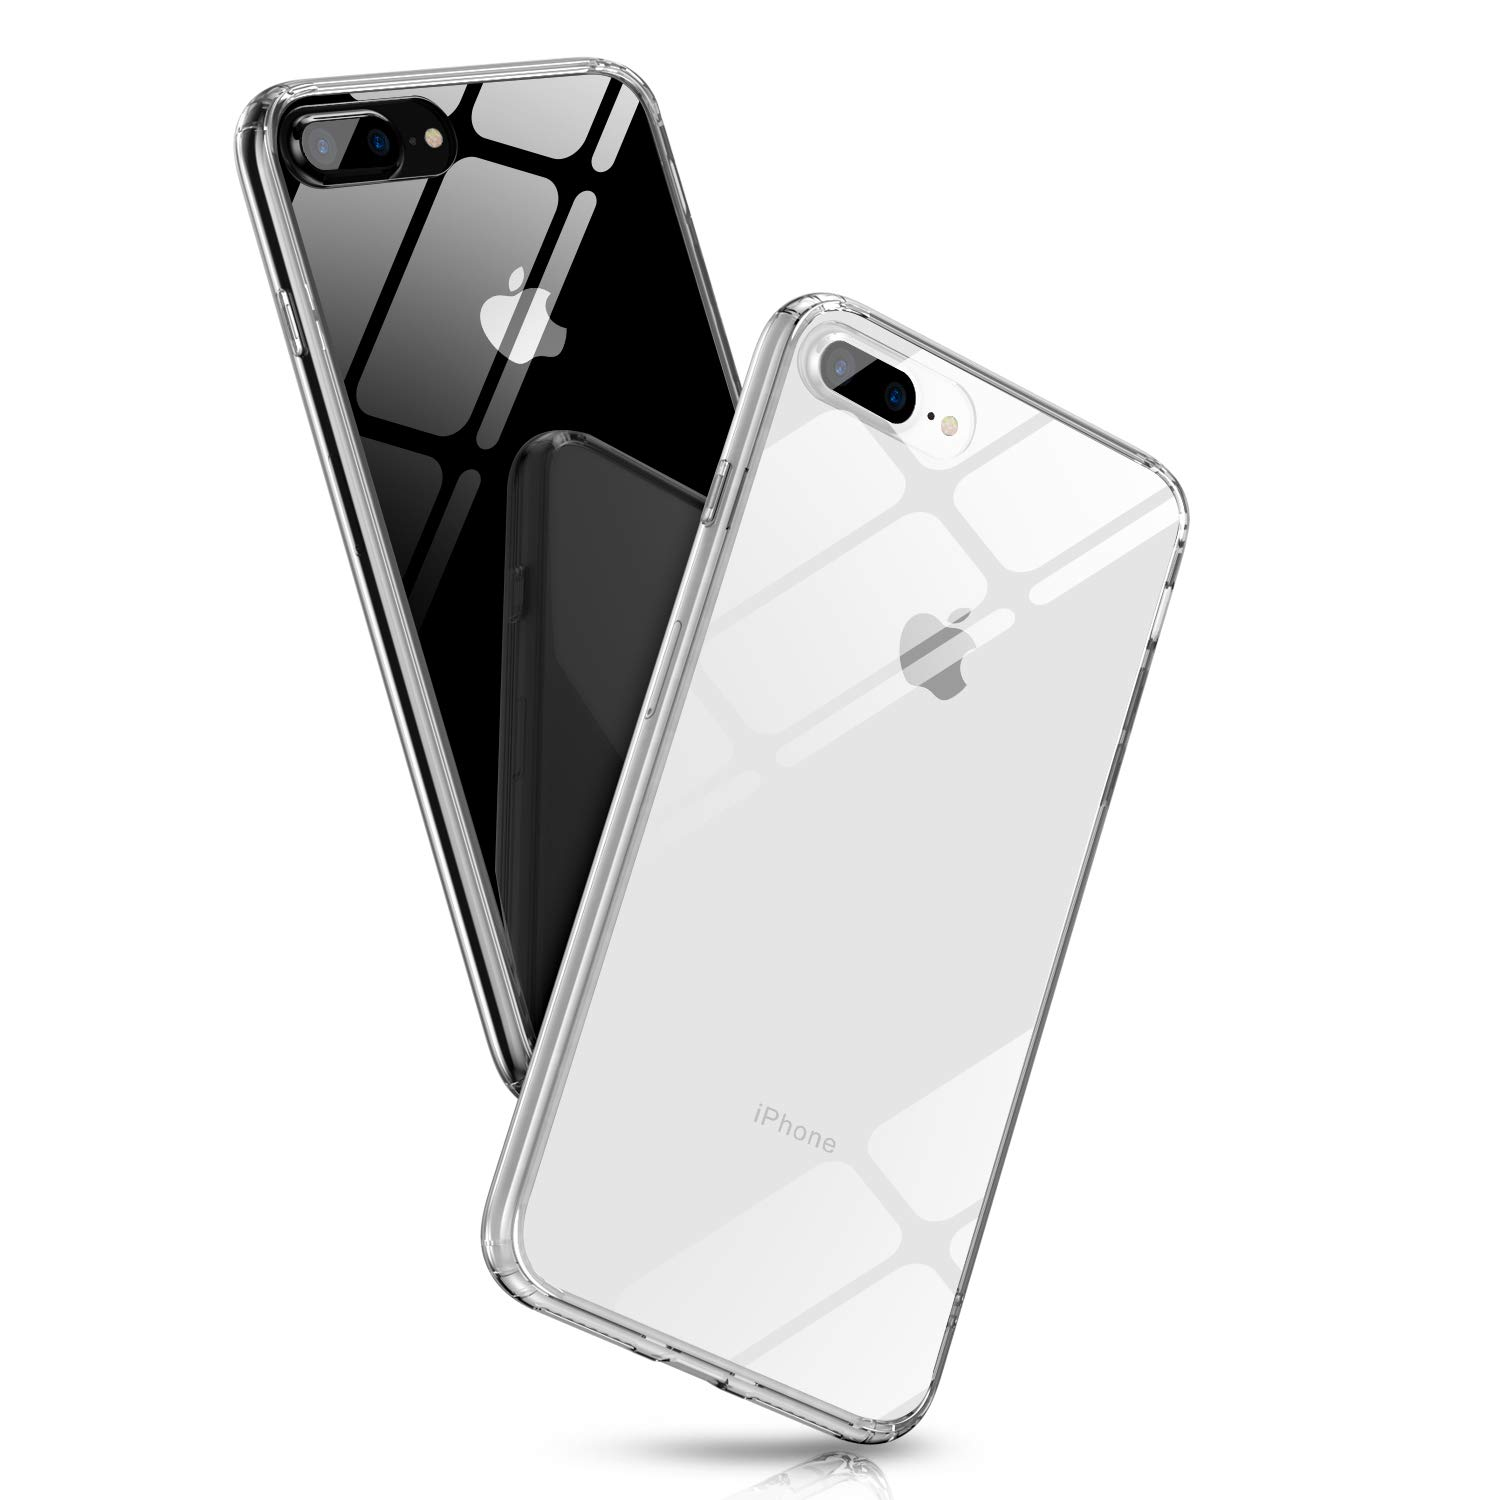 iPhone 8 Plus Clear Case, Ultra Hybrid 9H Tempered Glass Apple 7 Plus Glass Cover, Crystal Clear Anti-Scratch TPU Bumper iPhone 8 Plus Glass Case Transparent, Compatible for Apple 5.5 inch by Aunote